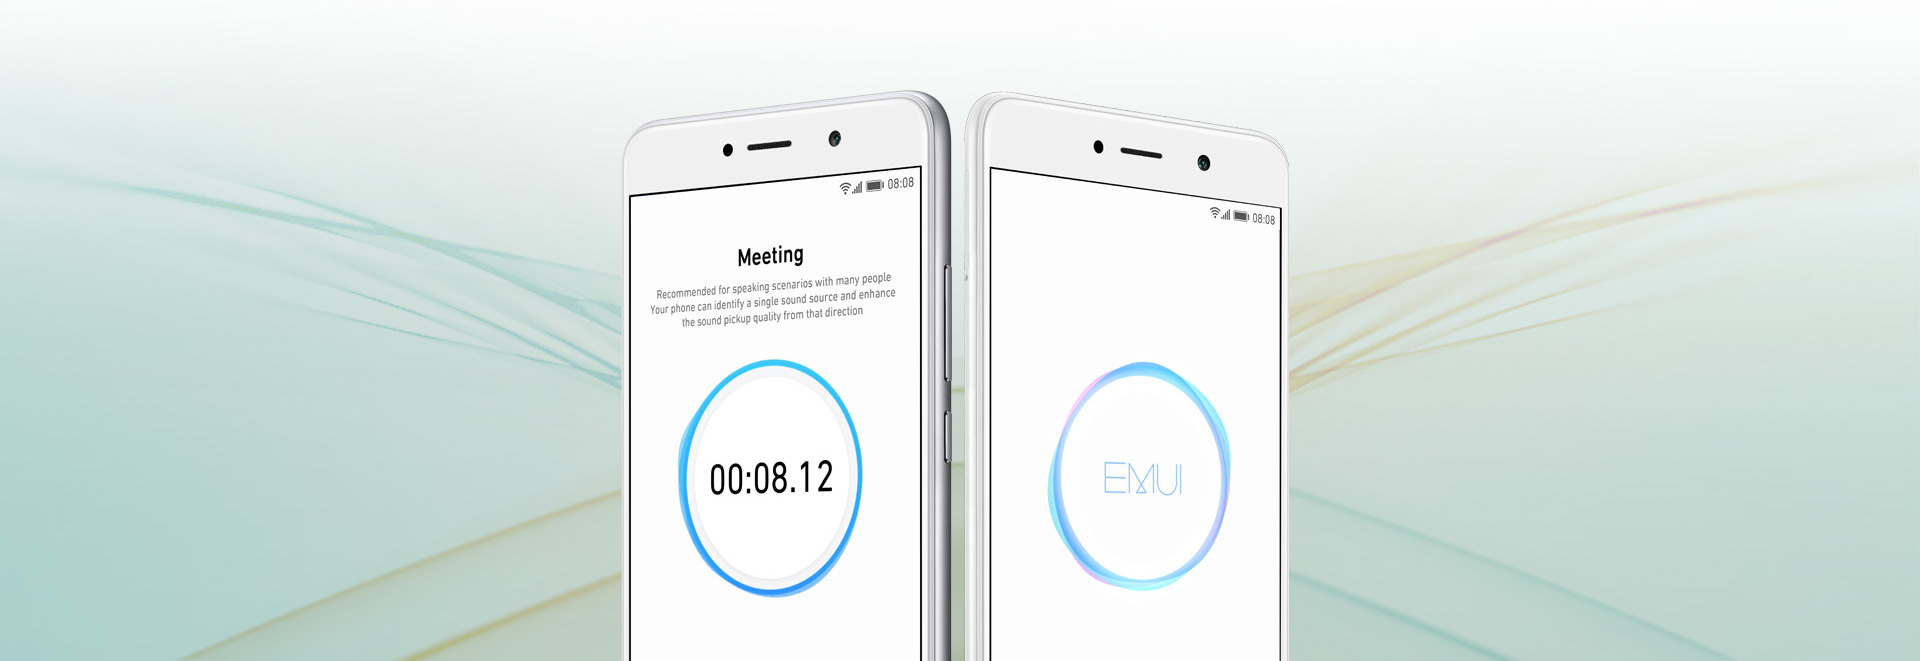 EMUI 5.1 A Fresh New Experience